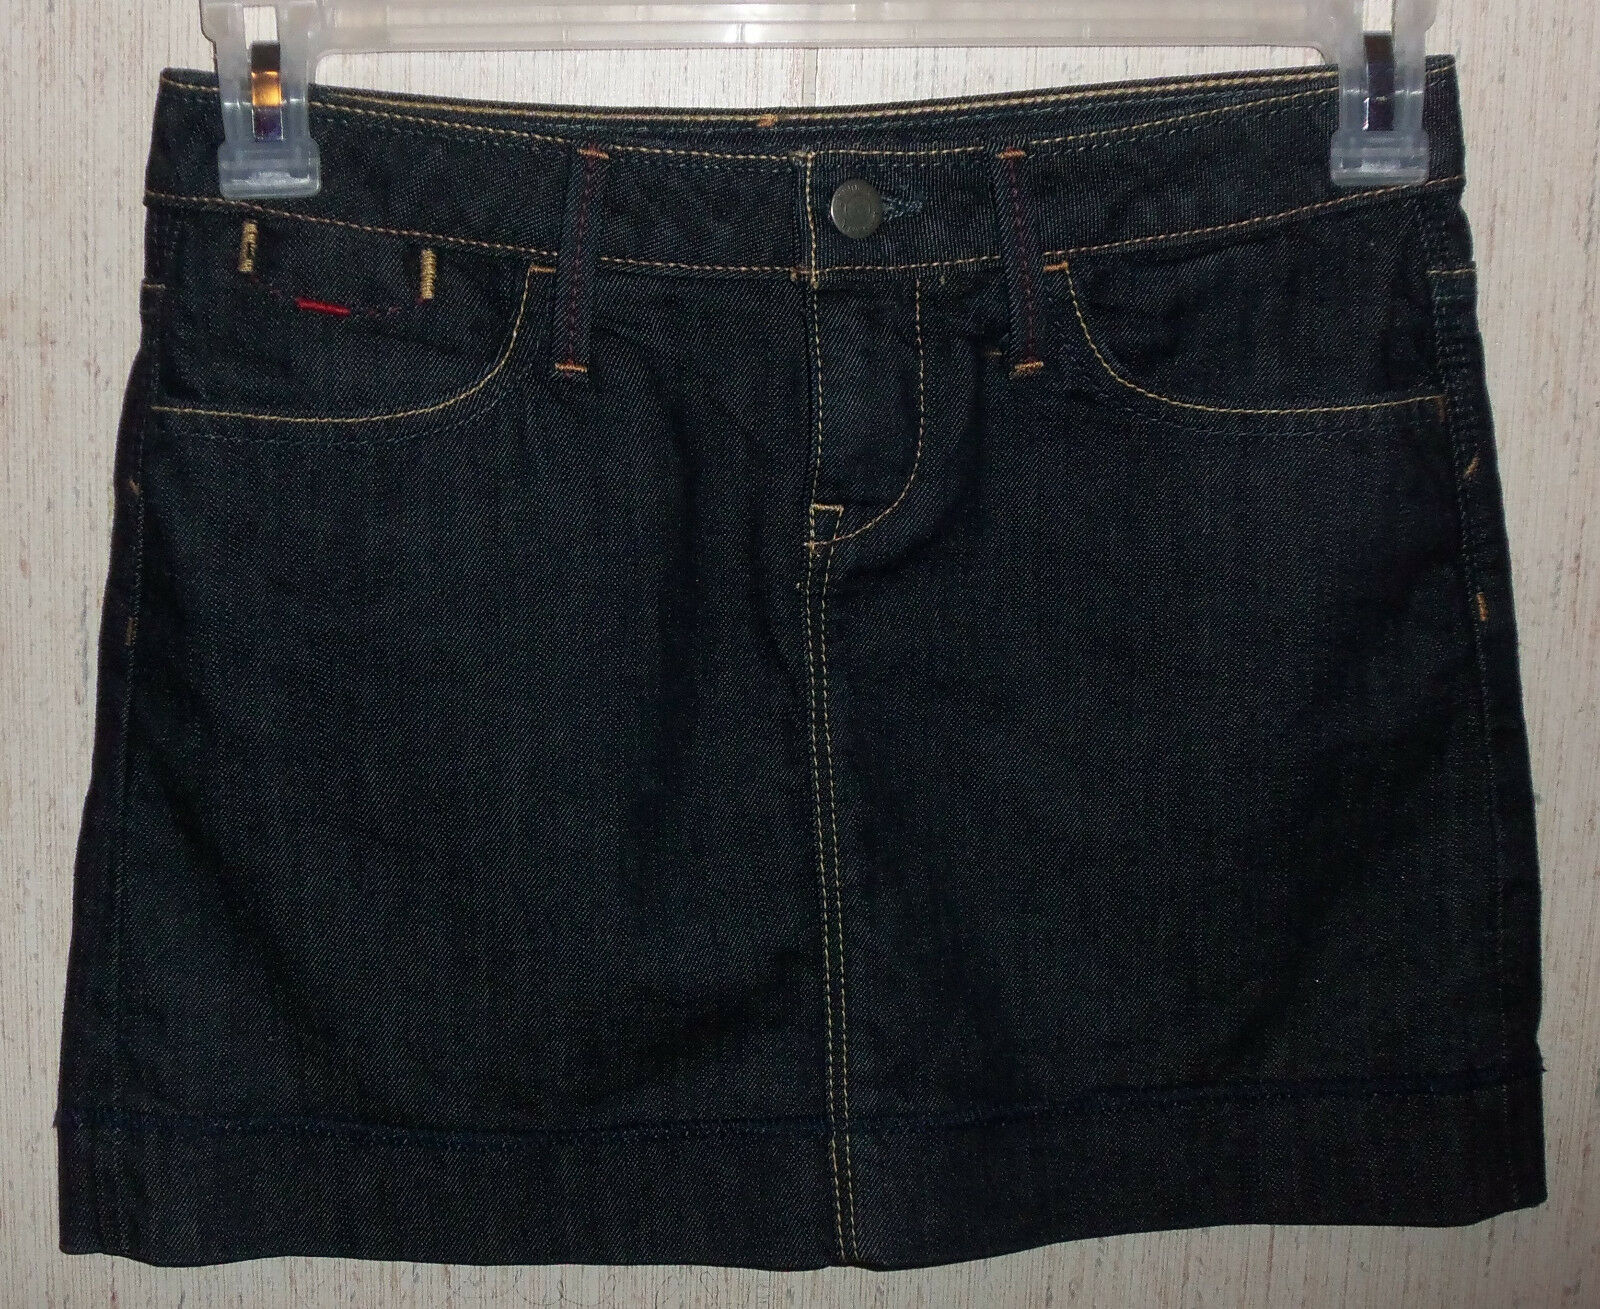 NWOT WOMENS BANANA REPUBLIC Premium Denim STRETCH DARK blueE JEAN SKIRT  SIZE 0